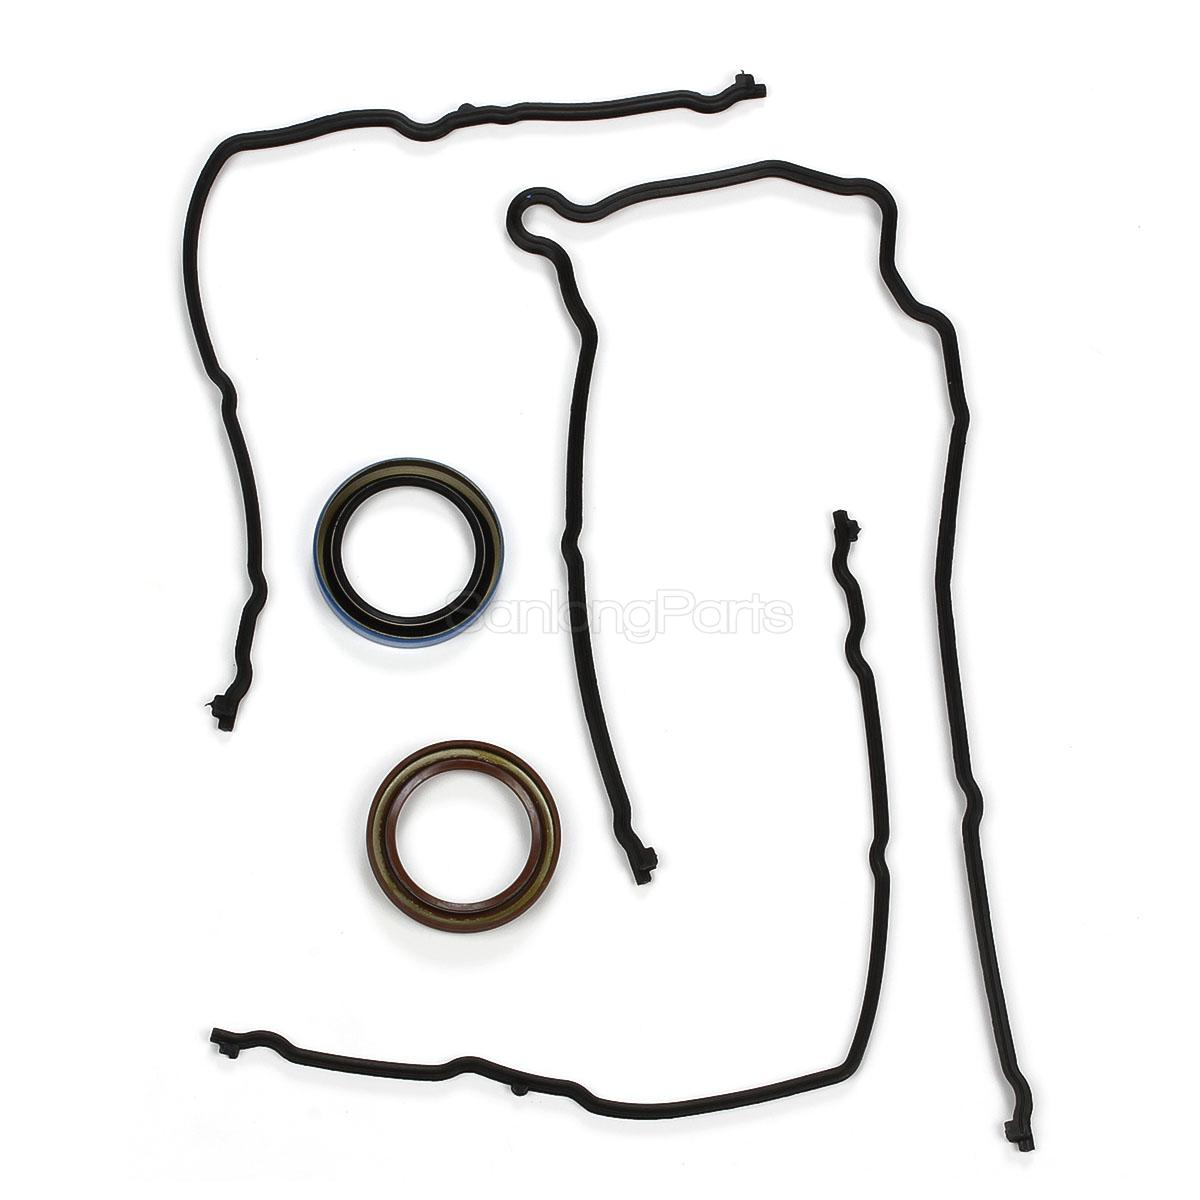 Timing Cover Gasket Set Fits 96 05 Ford Crown Victoria 4